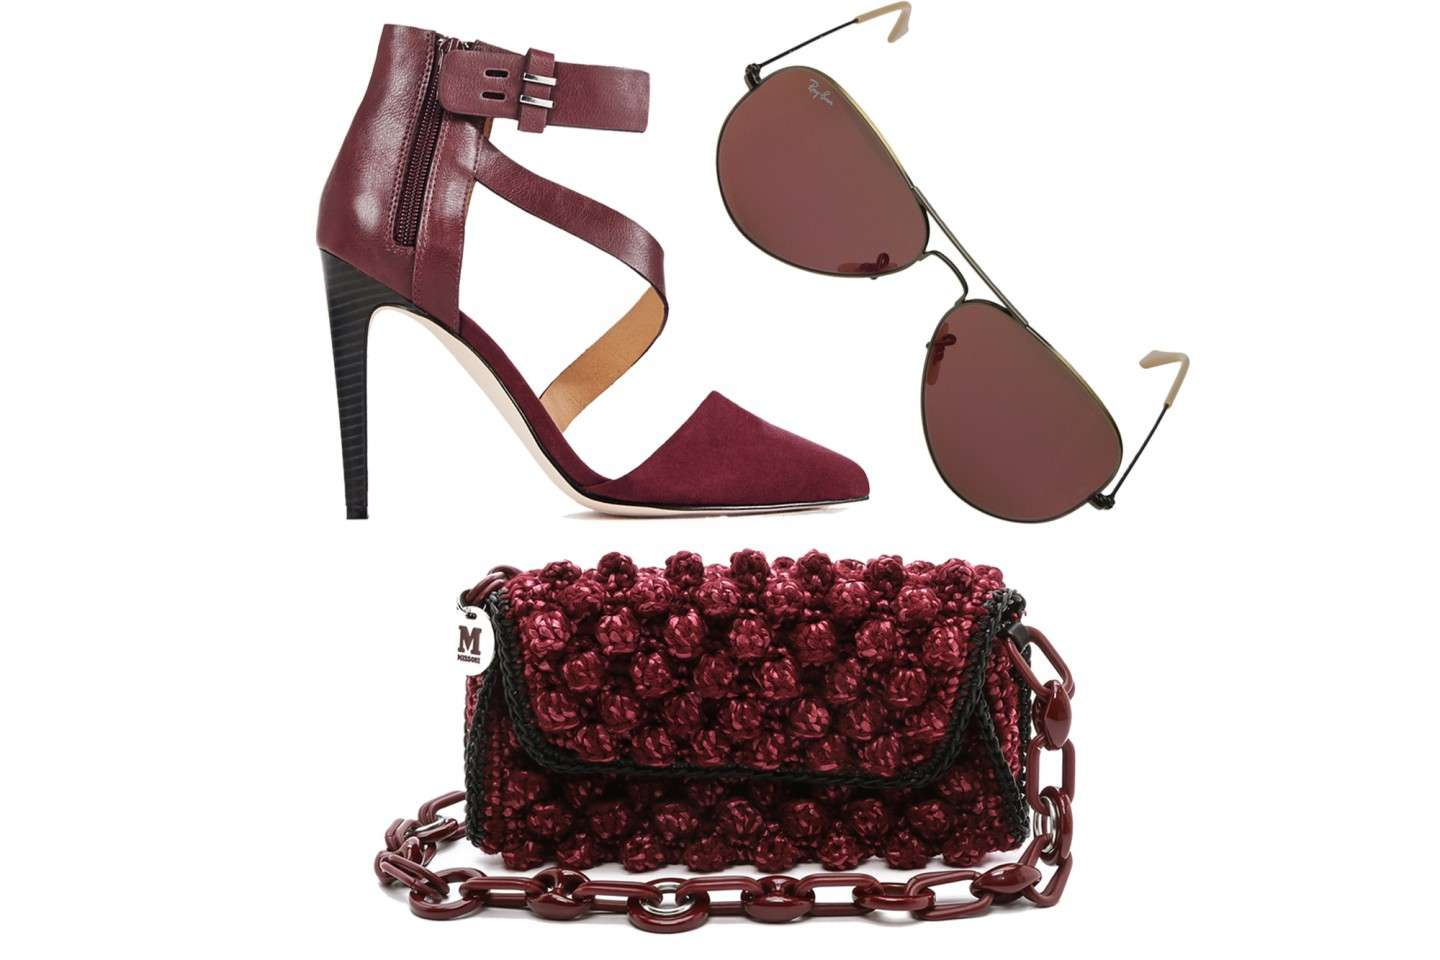 Tre idee di accessori color Marsala